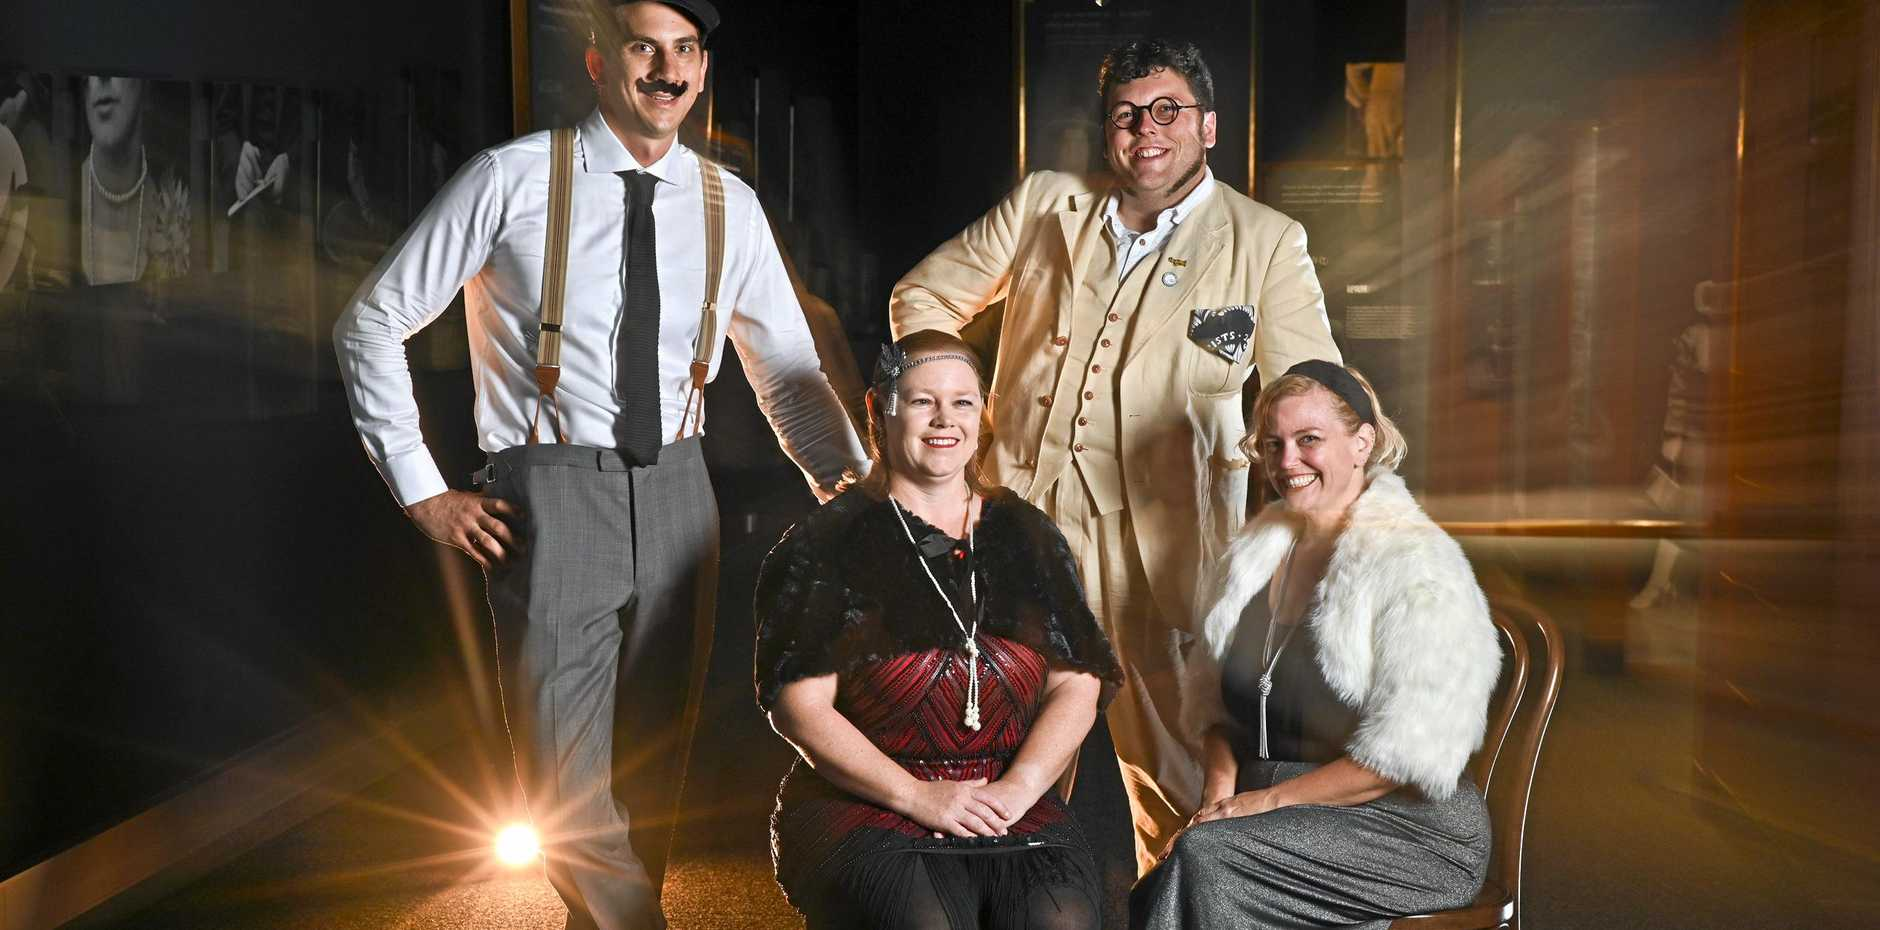 The Workshops Rail Museum will be hosting their Prohibition Party on Saturday, February 9. Ben Boyd, Kylie O'Toole, David Hampton and Tahlei O'Dea.